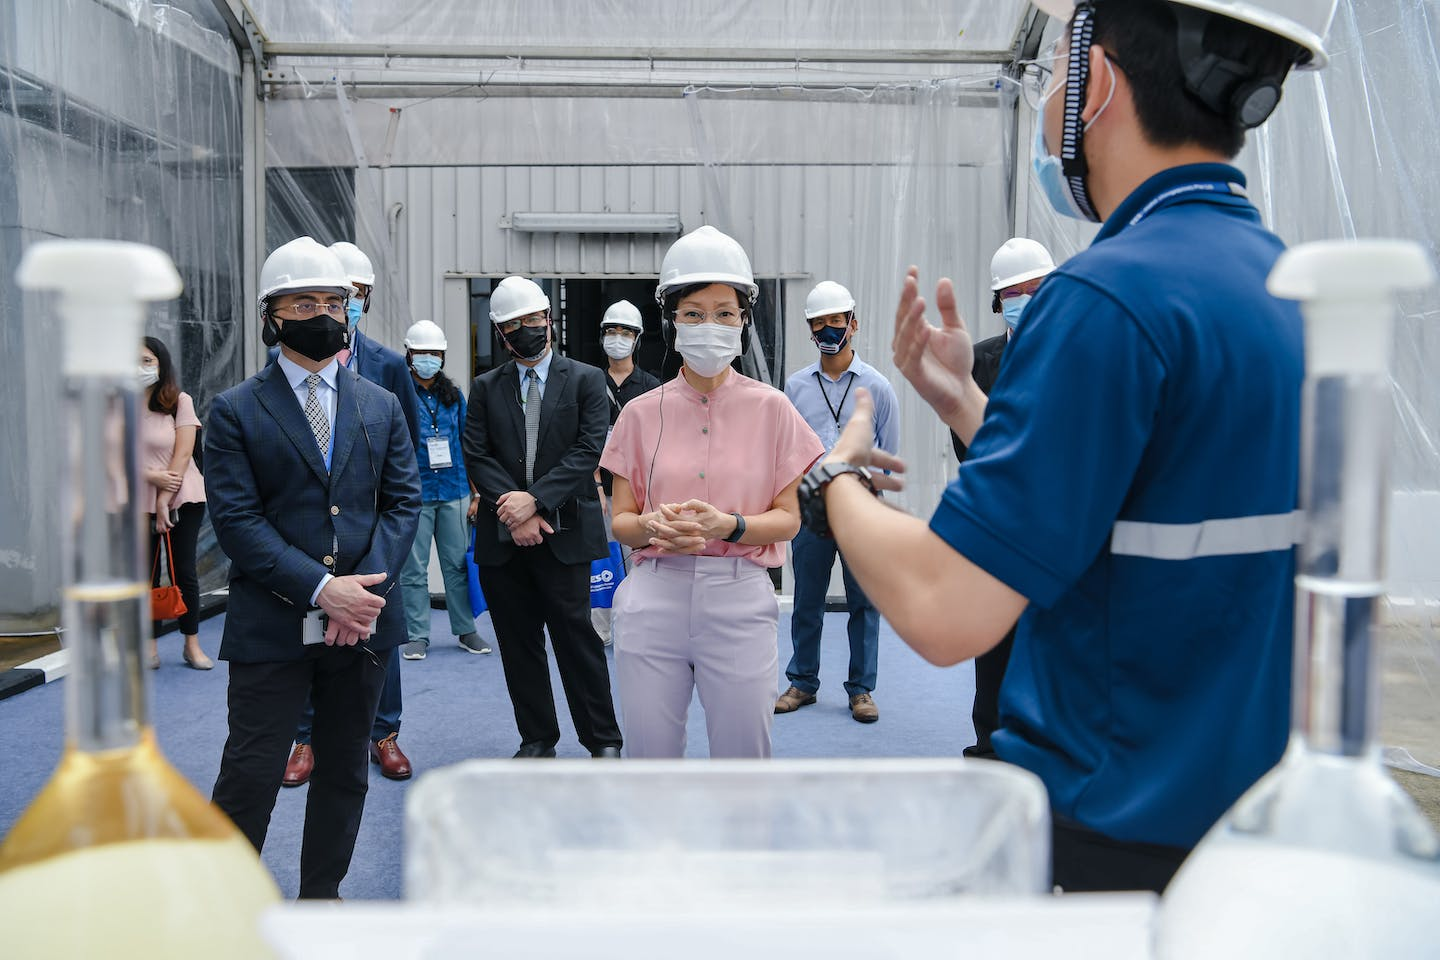 Singapore's environment minister Grace Fu (centre) is shown around the new Tes B battery recycling facility in the industrial region of Jurong.